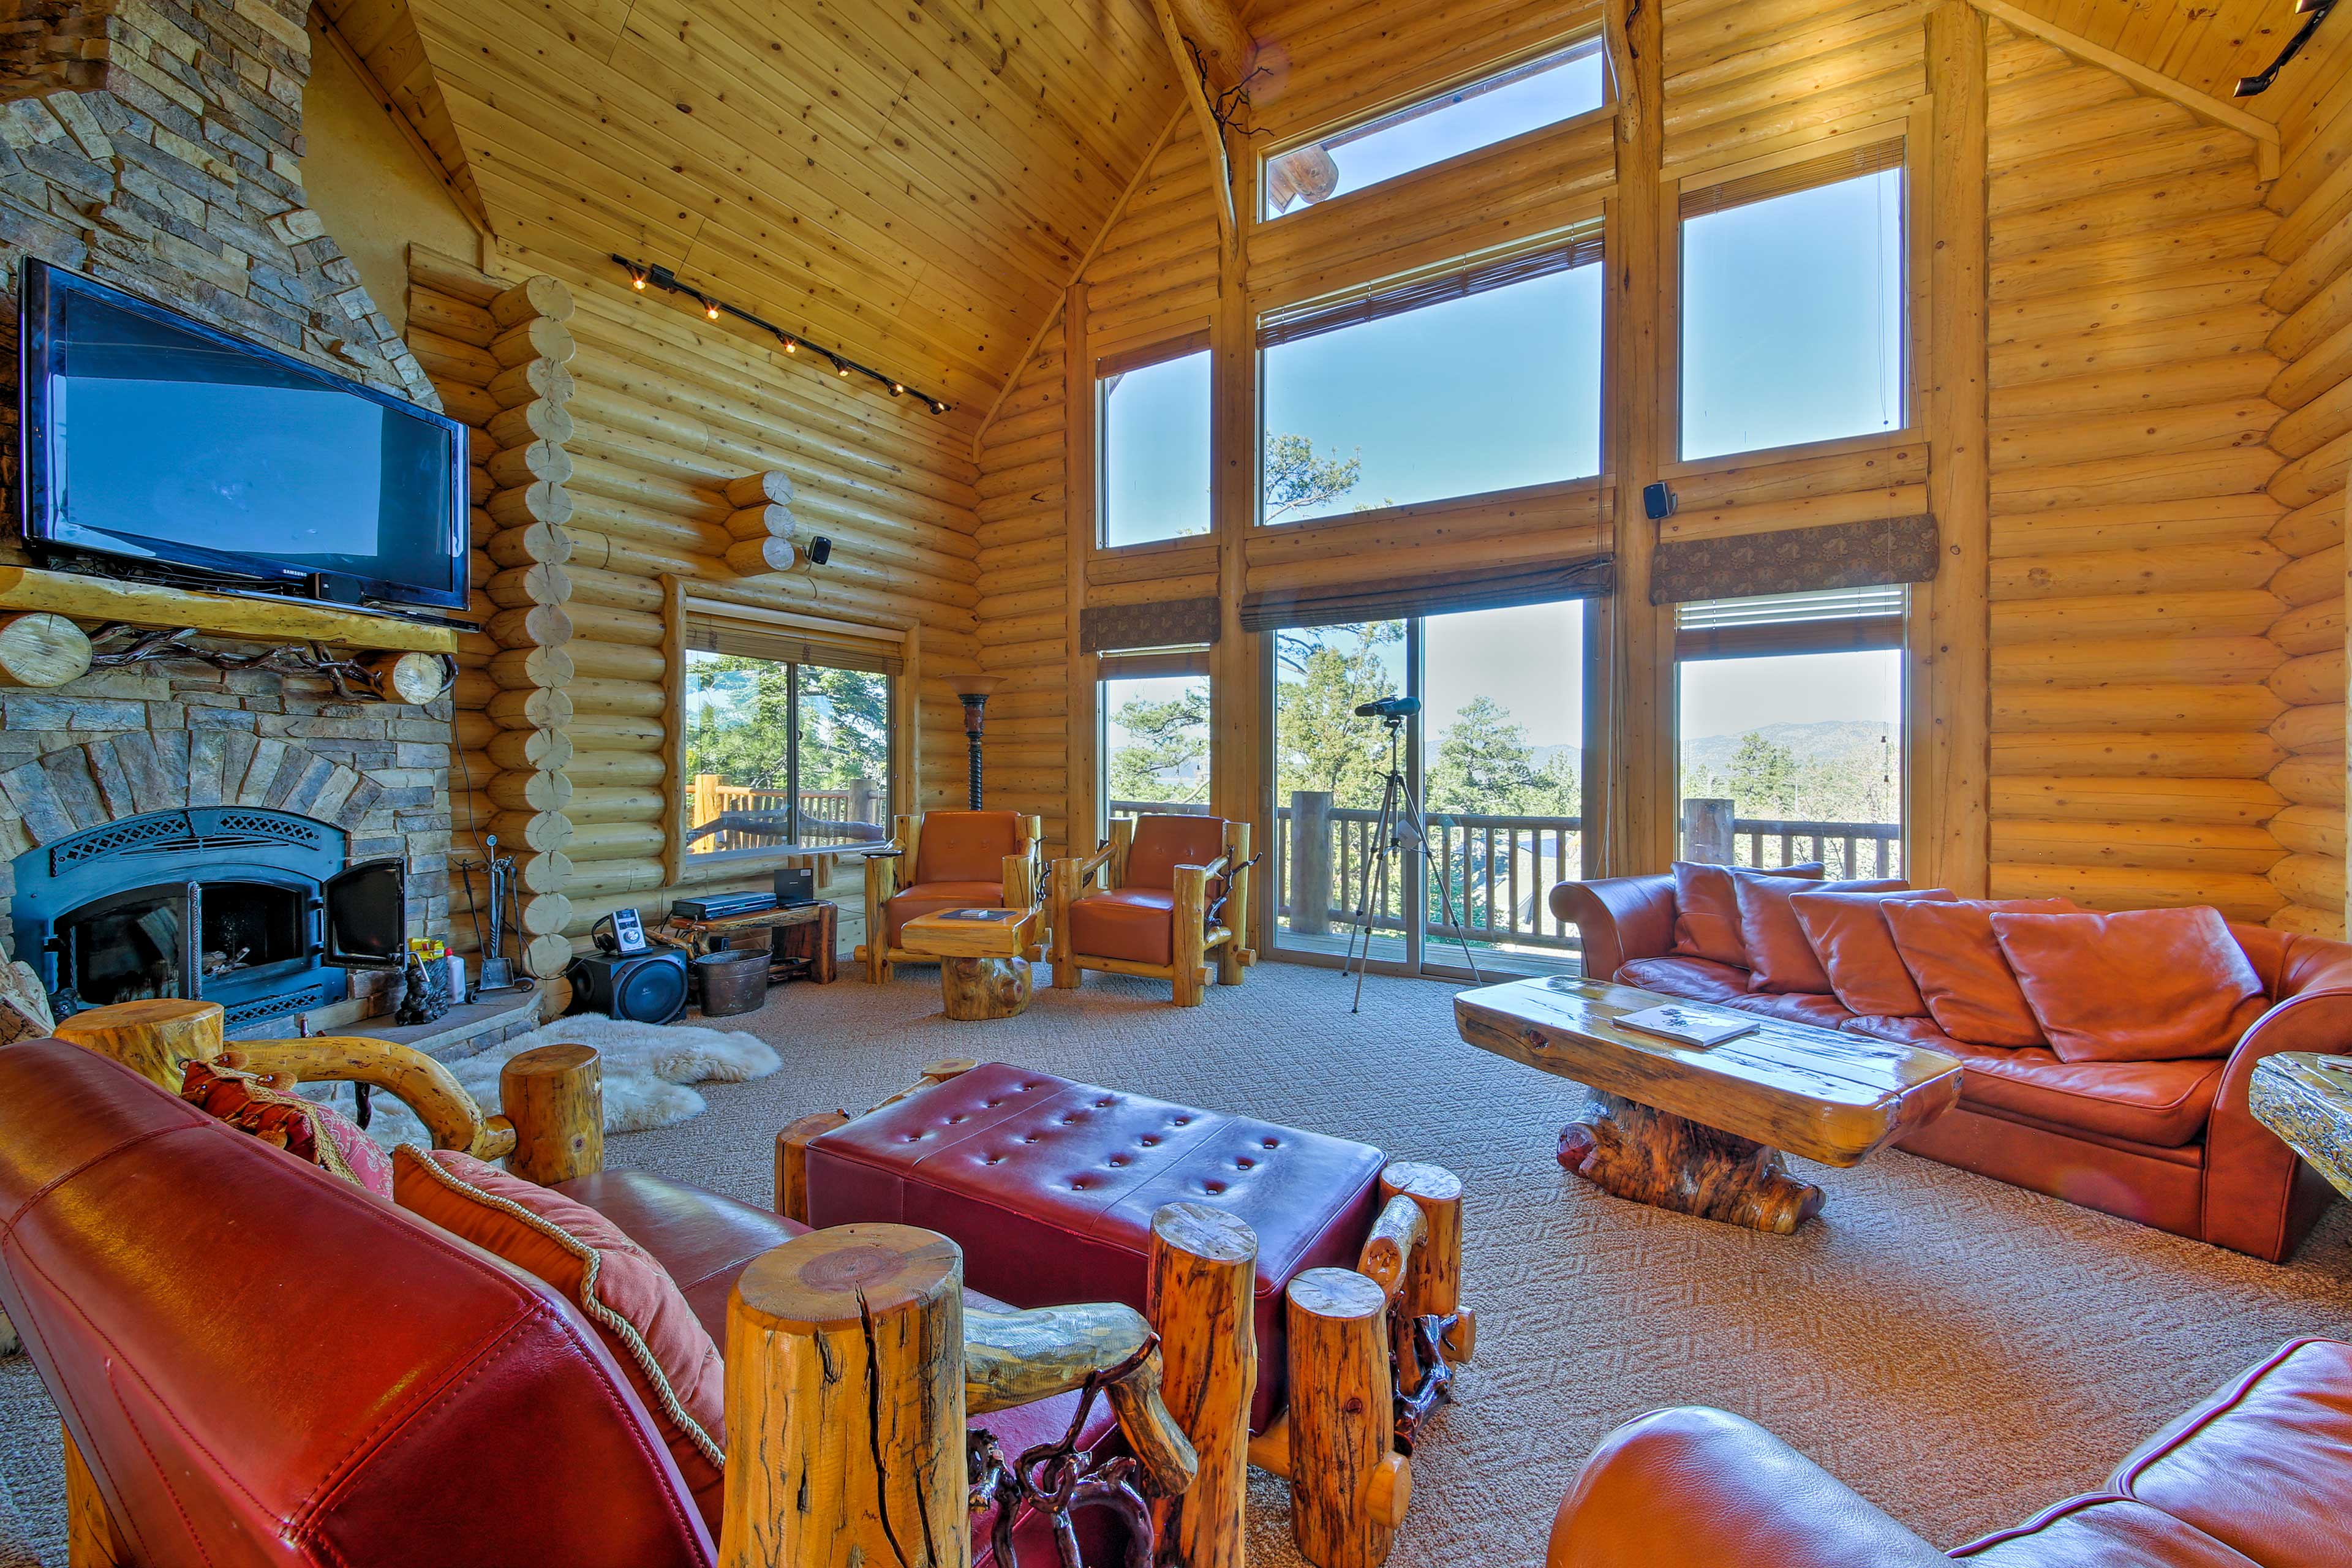 Stay at this vacation rental house in Big Bear Lake for a mountainside retreat!